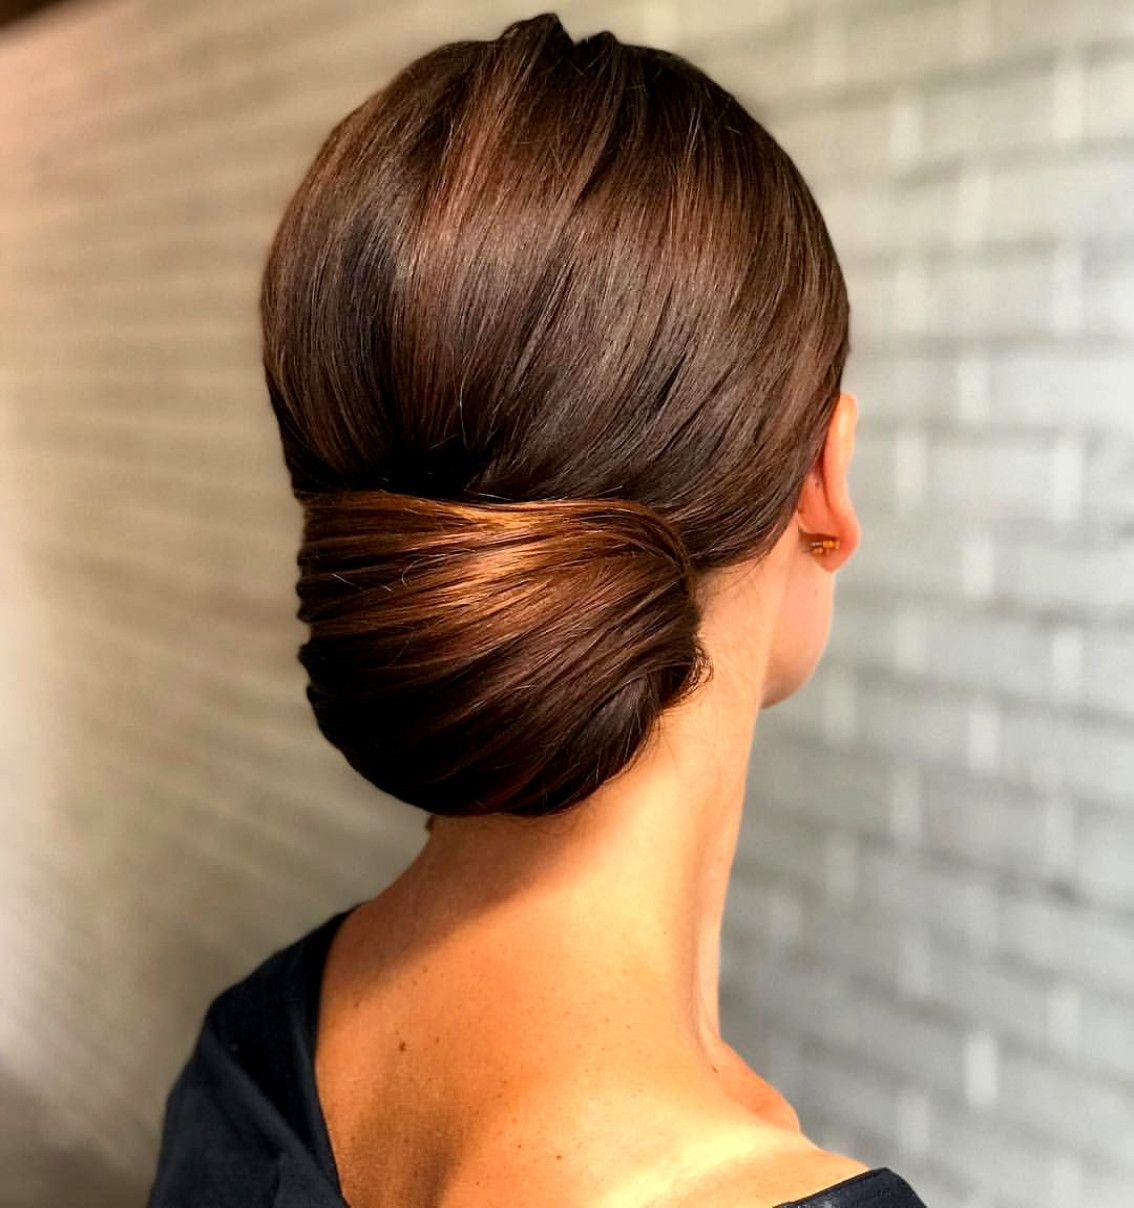 Glossy Low Chignon Created By Student Stylingbysarahxx During Bridal Hairstyling Course With Kasia Fo Long To Short Hair Medium Hair Styles Short Hair Styles